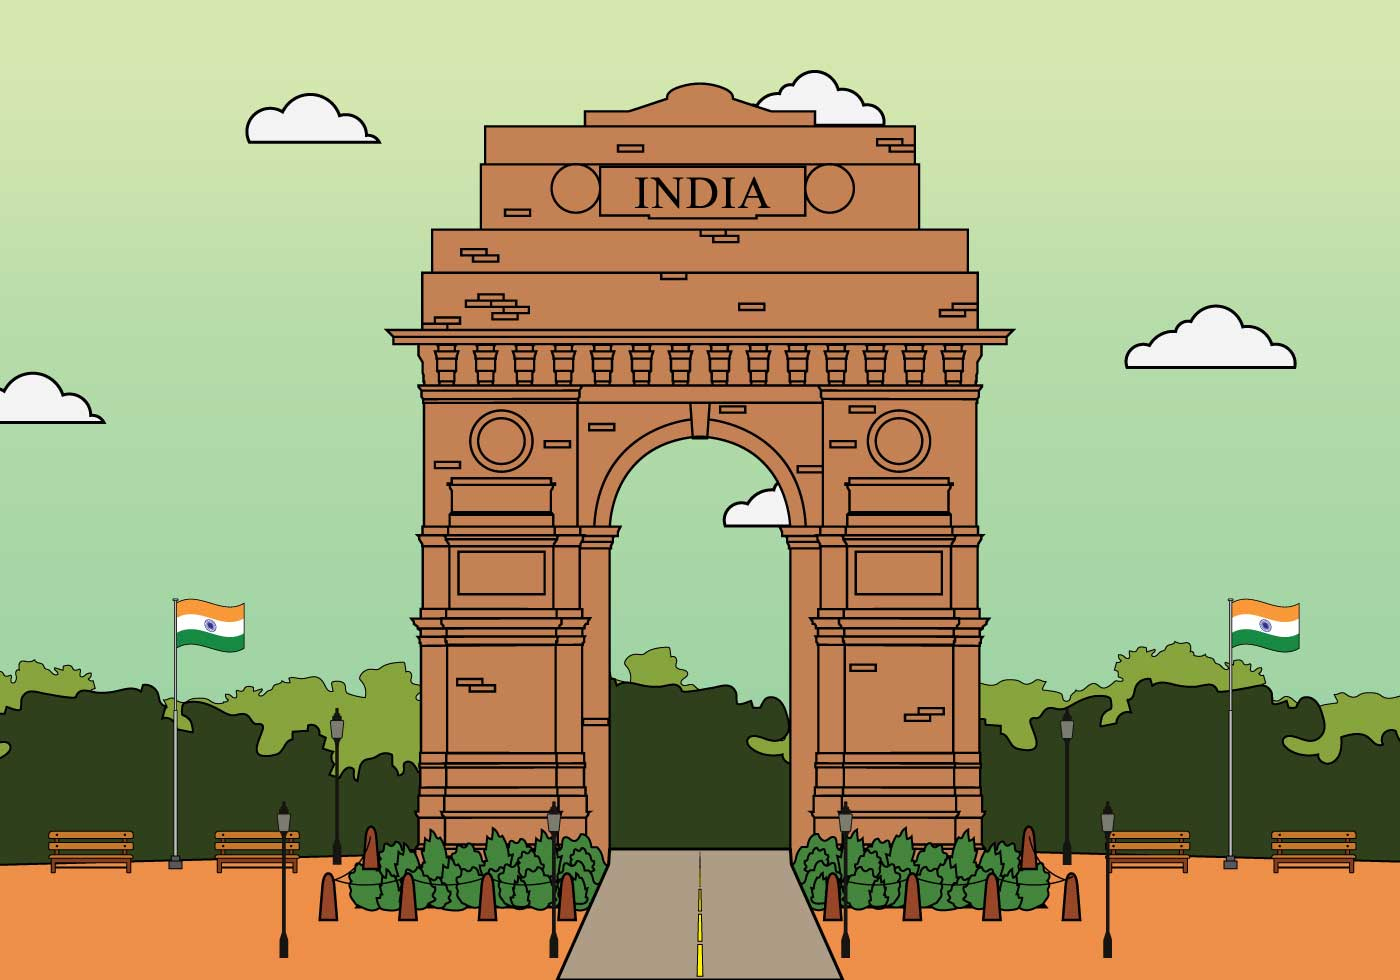 Line Drawing Of Qutub Minar : Free india gate illustration download vector art